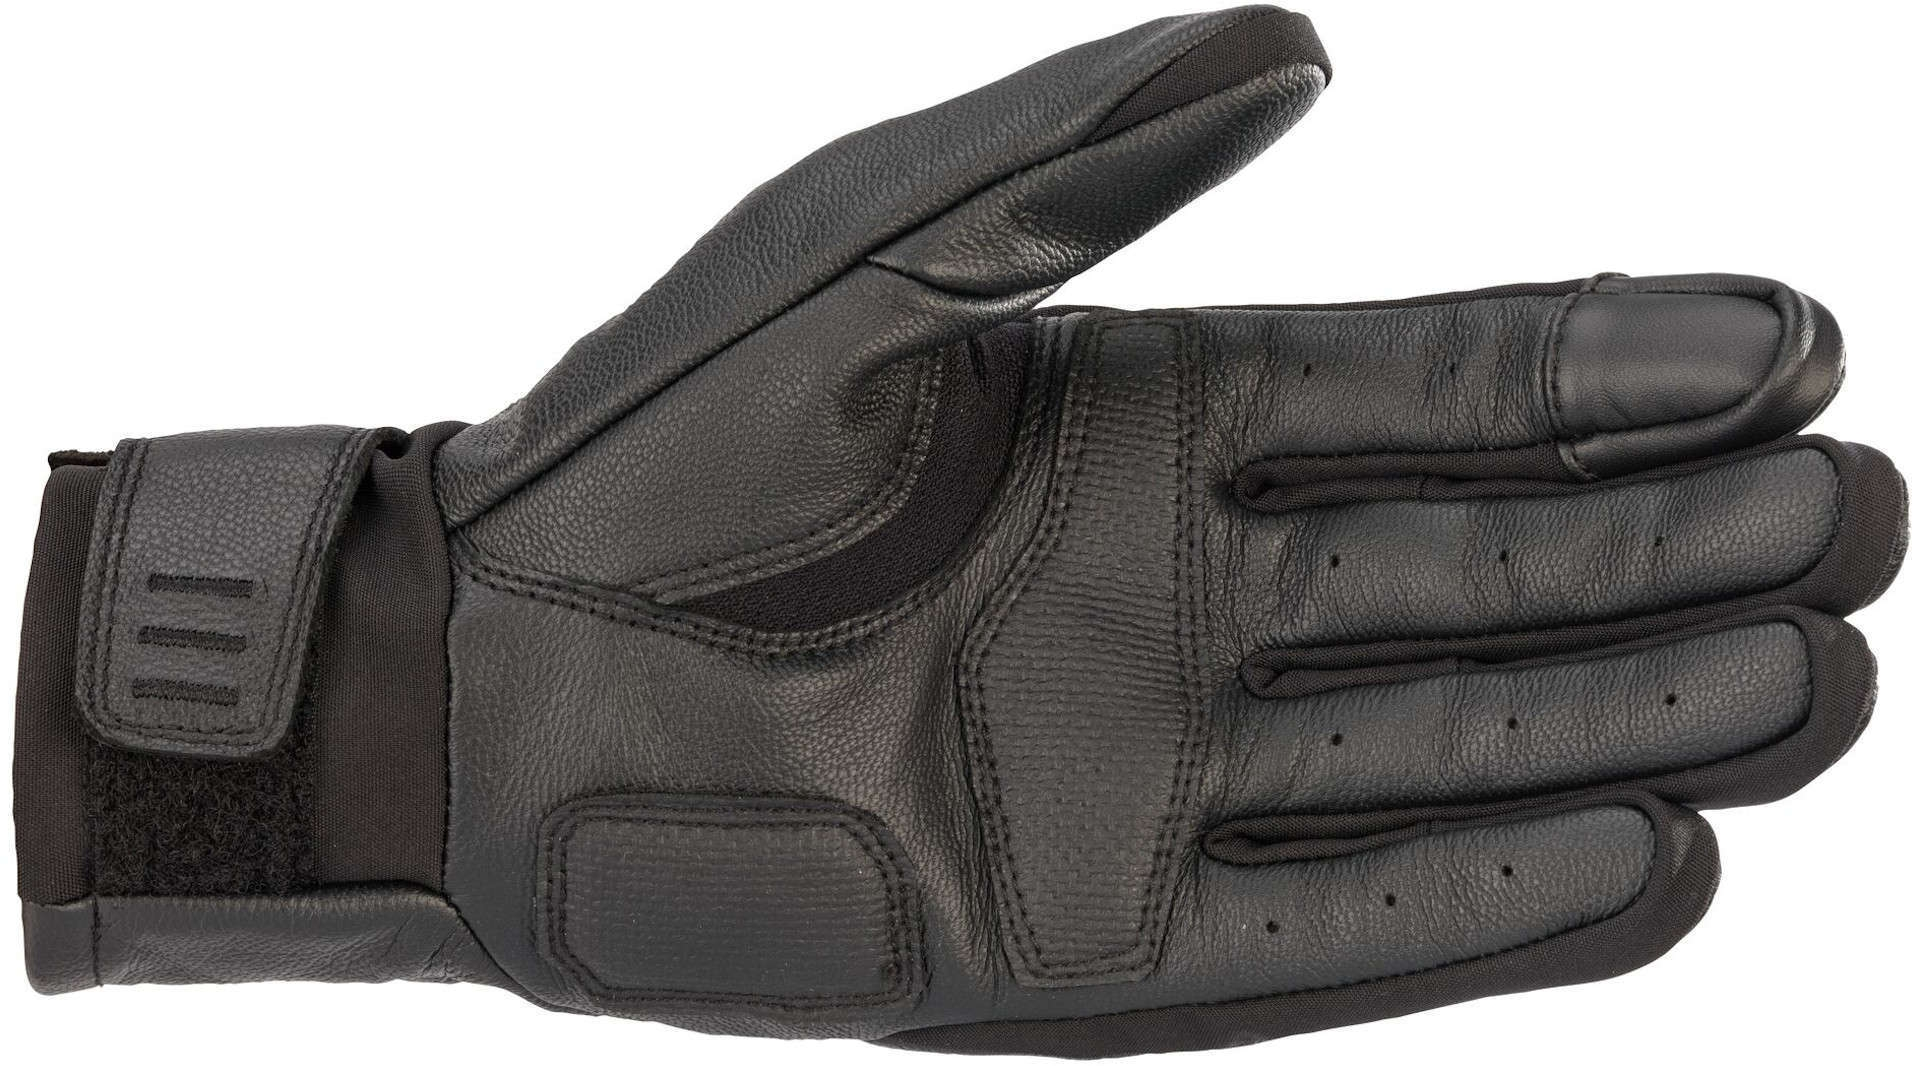 Guanti pelle Alpinestars GARETH LEATHER nero 2